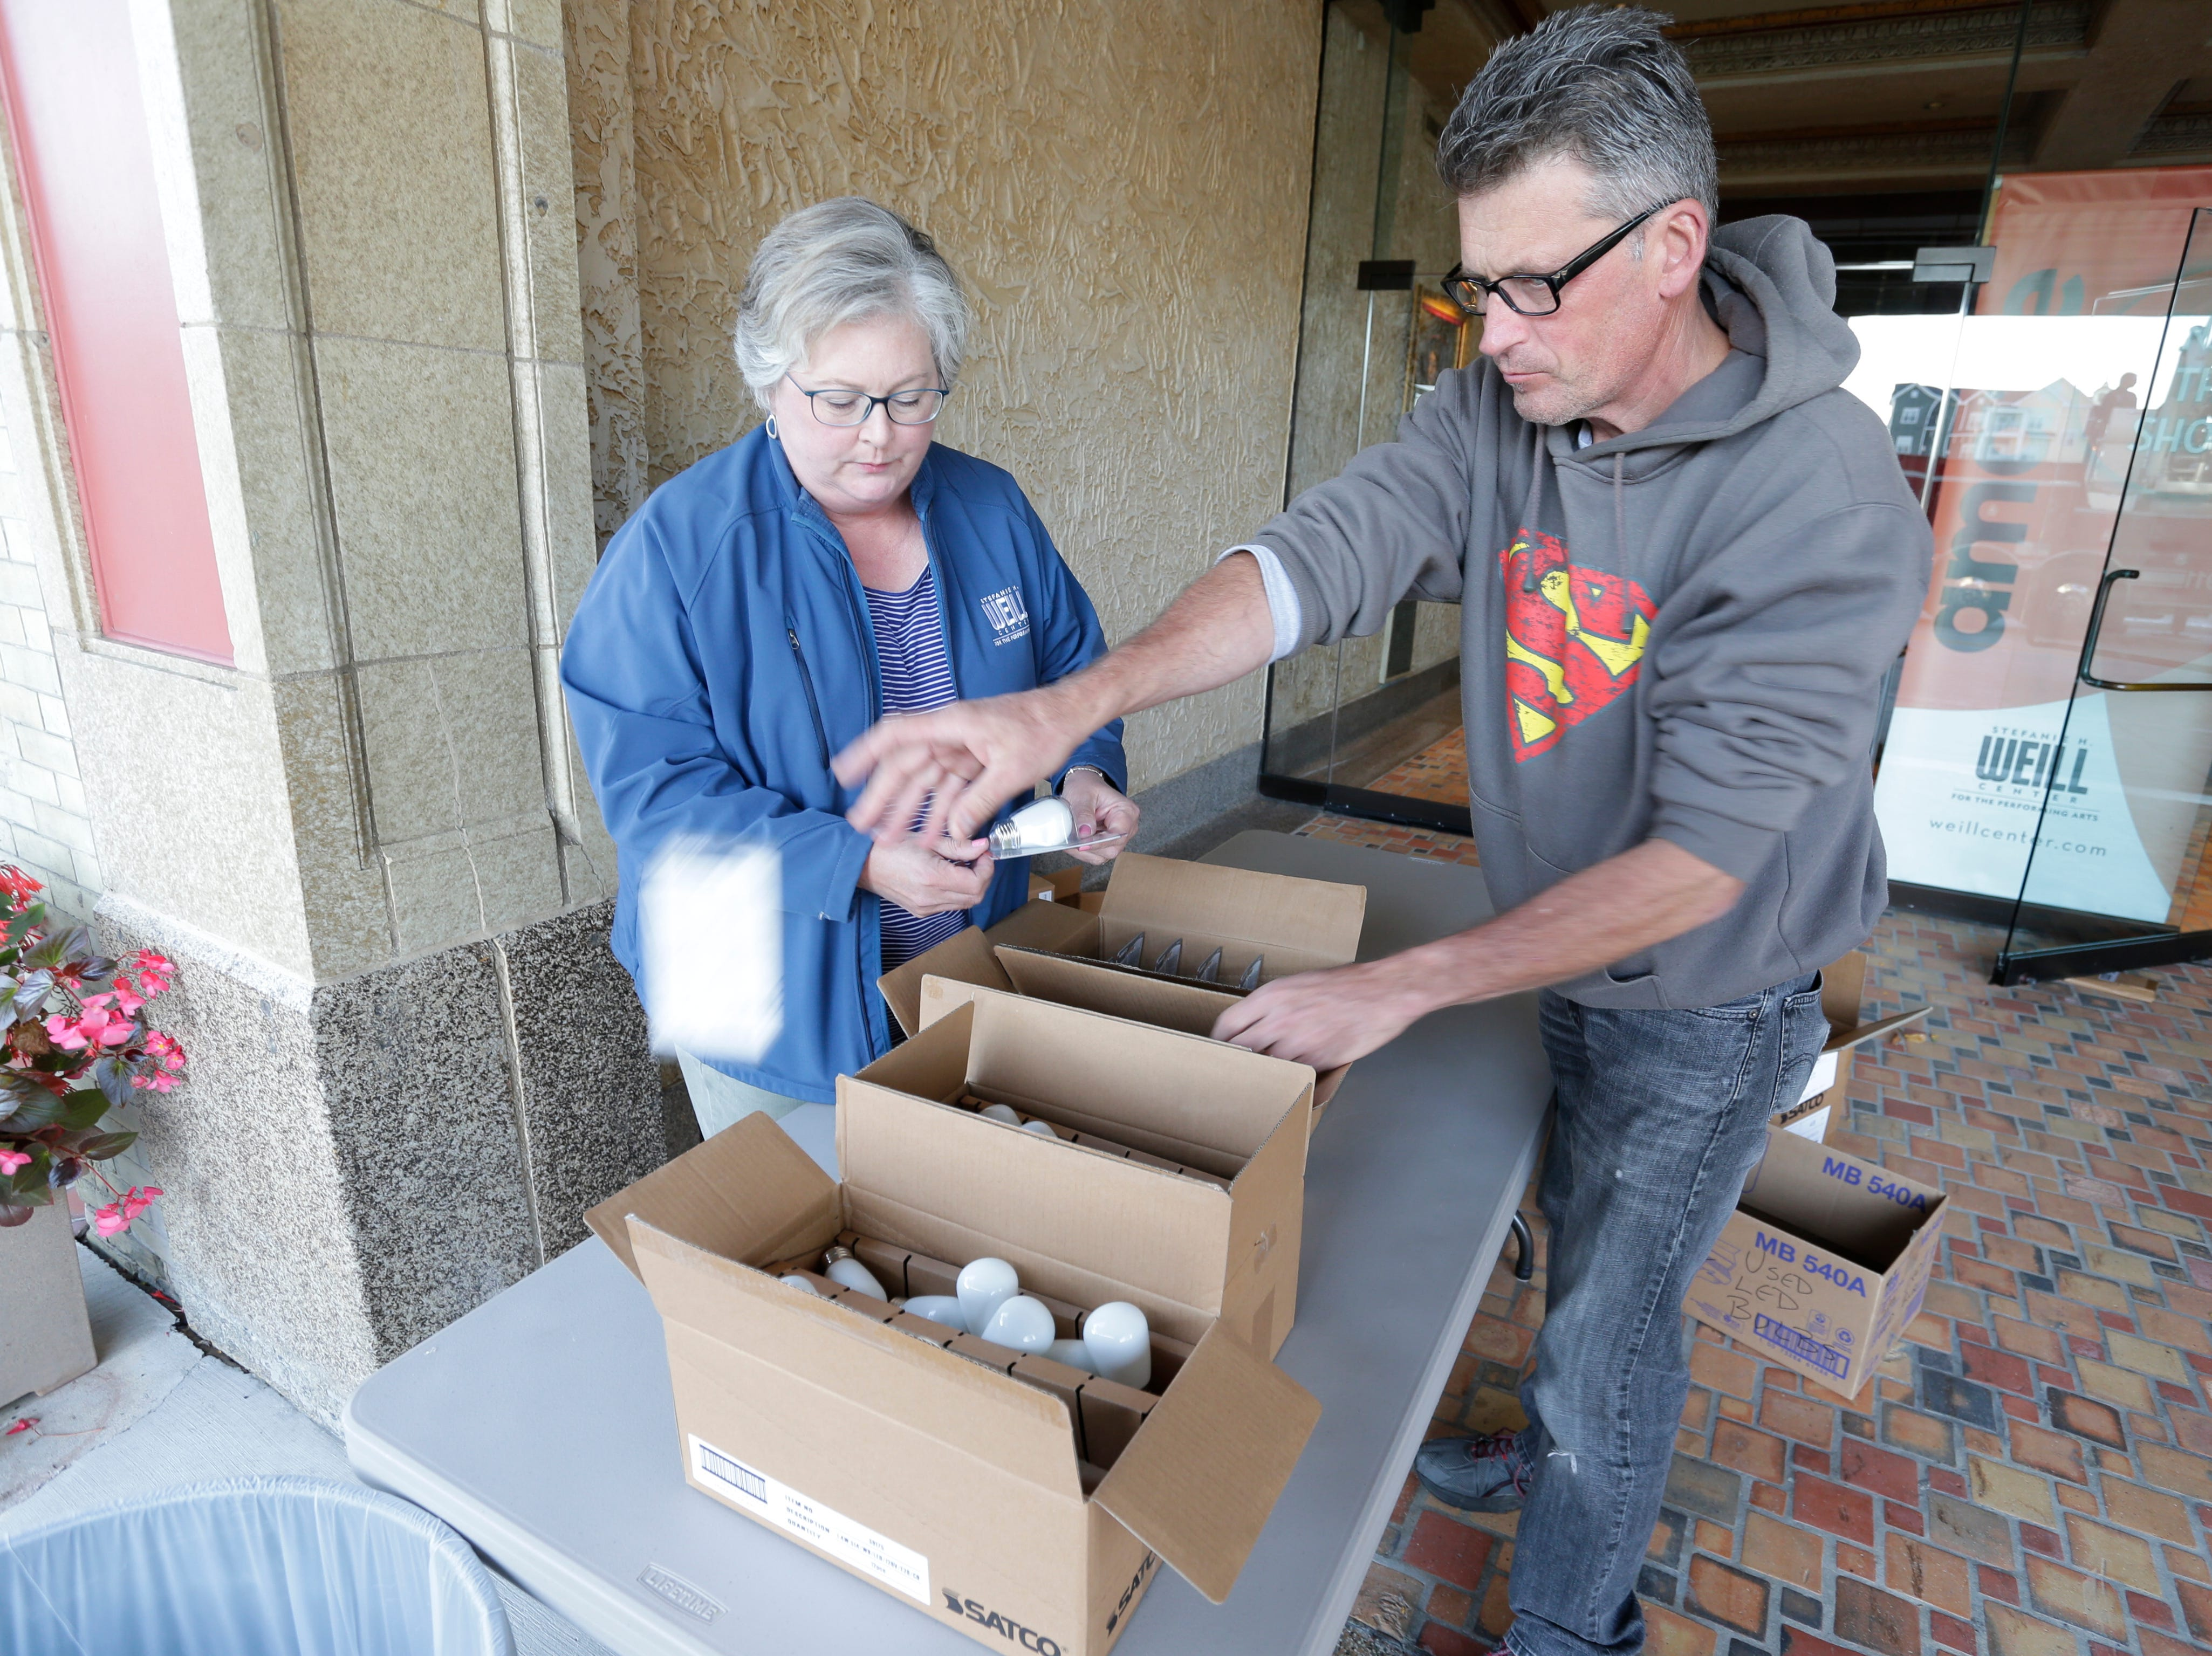 Stefanie H. Weill Center for the Performing Arts manager Kimberly Meller, left, and her husband Henry, unpack new LED lightbulbs for the marquee of the Center, Sunday, September 23, 2018, in Sheboygan, Wis. Meller said that the conversion project should wrap up in the next few weeks.